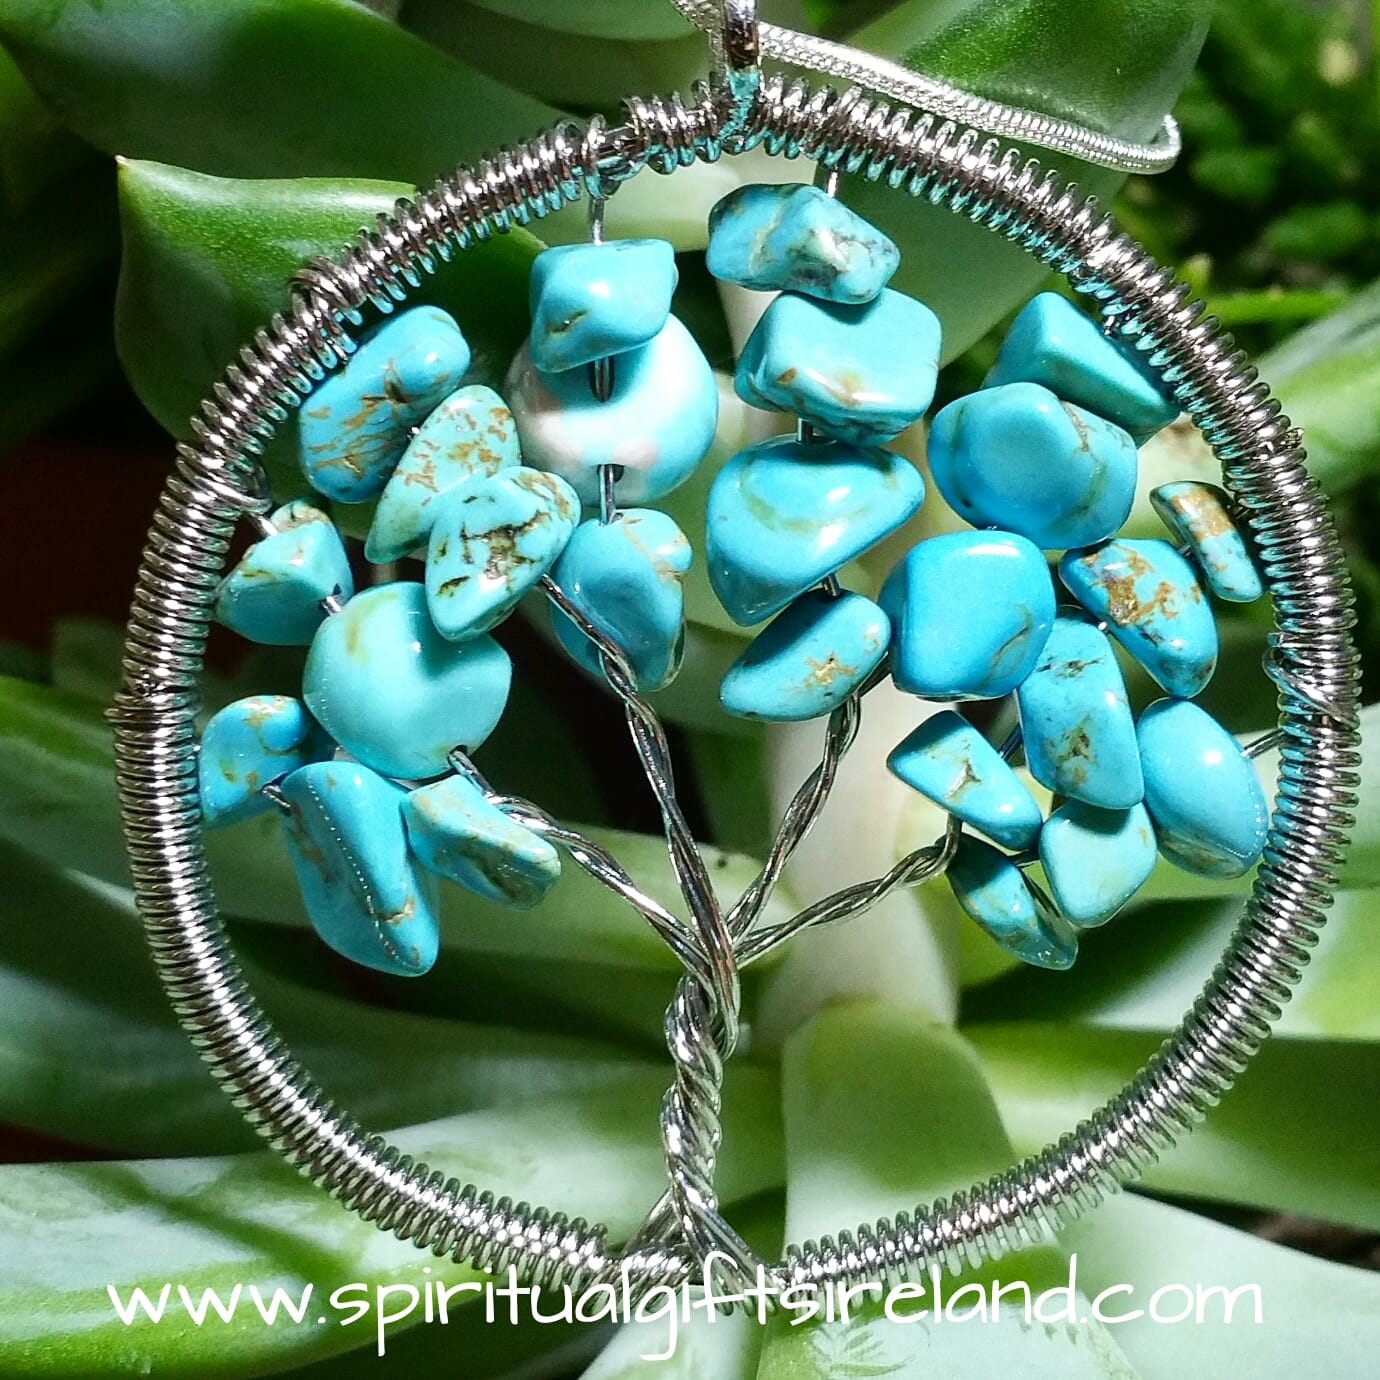 Meaning of the tree of life archives spiritual gifts ireland turquoise tree of life pendant necklace mozeypictures Choice Image